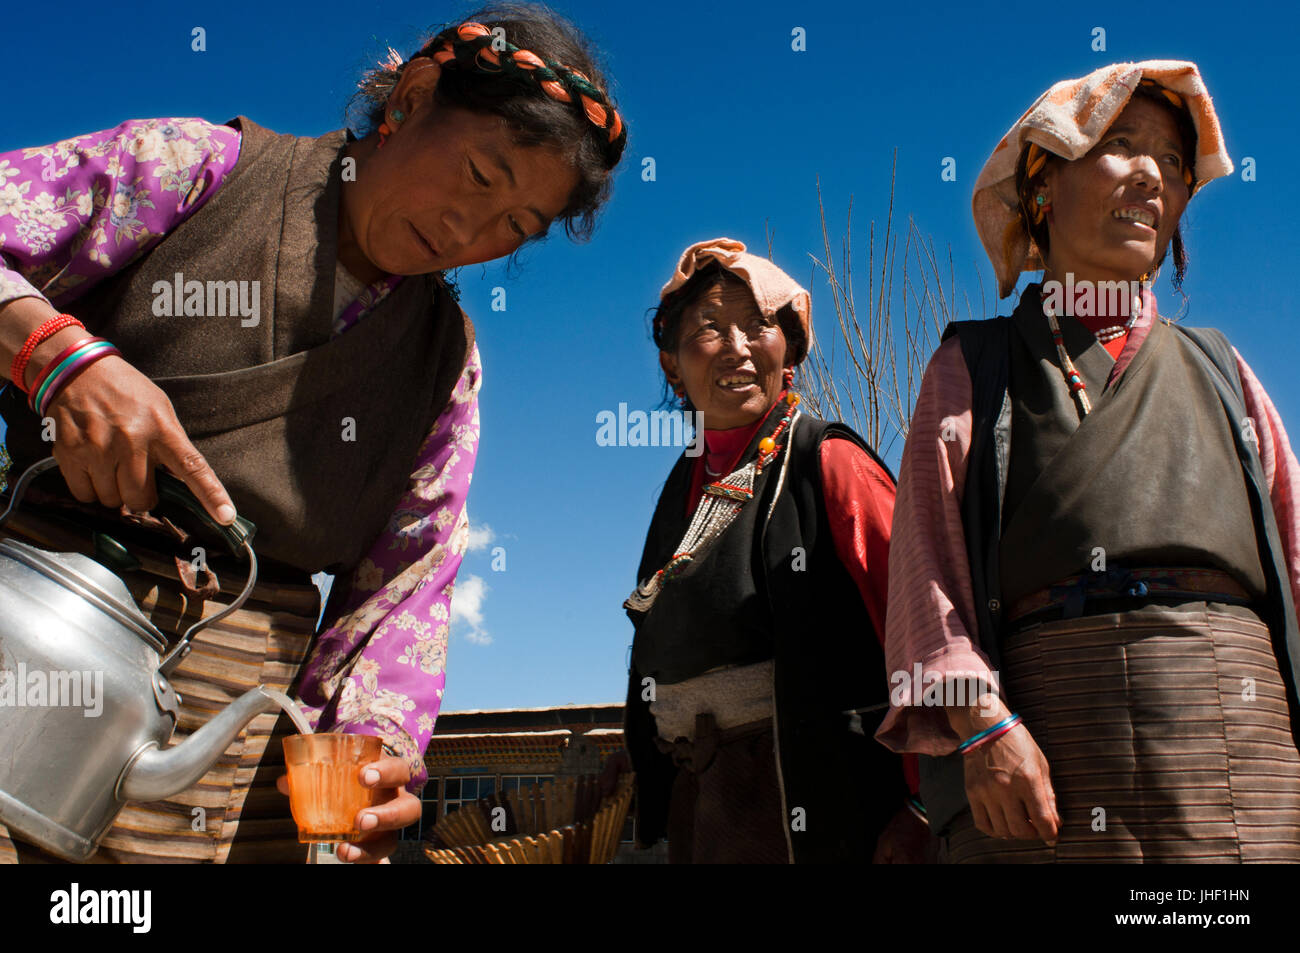 A family celebrates the graduation of a relative in the village of Bainans, located along the road separating Shigatse - Stock Image